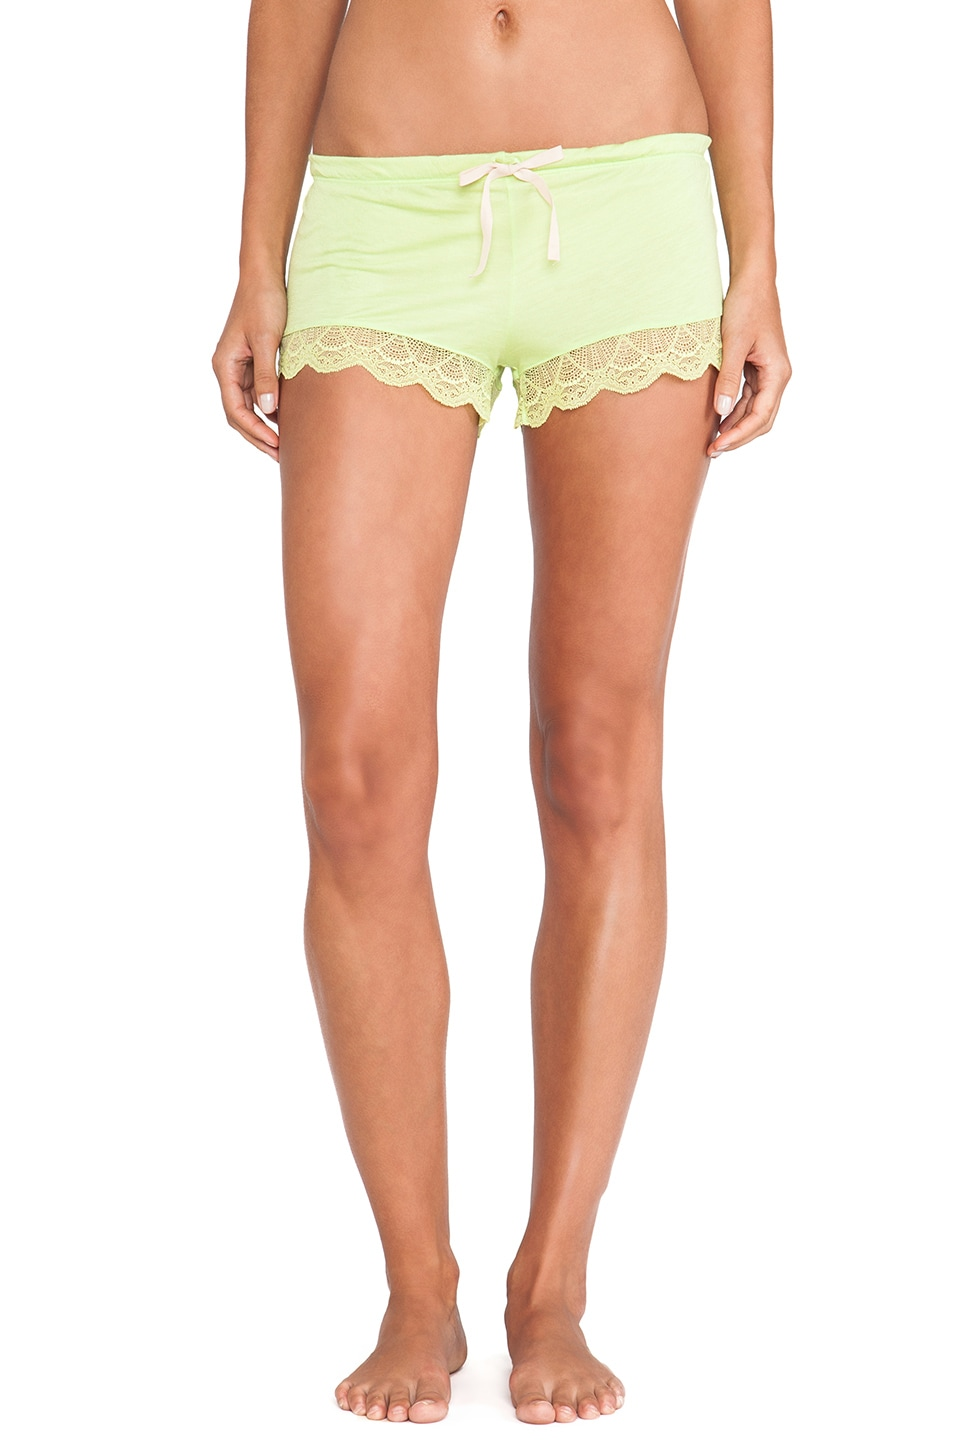 eberjey Zinia Short in Chartreuse